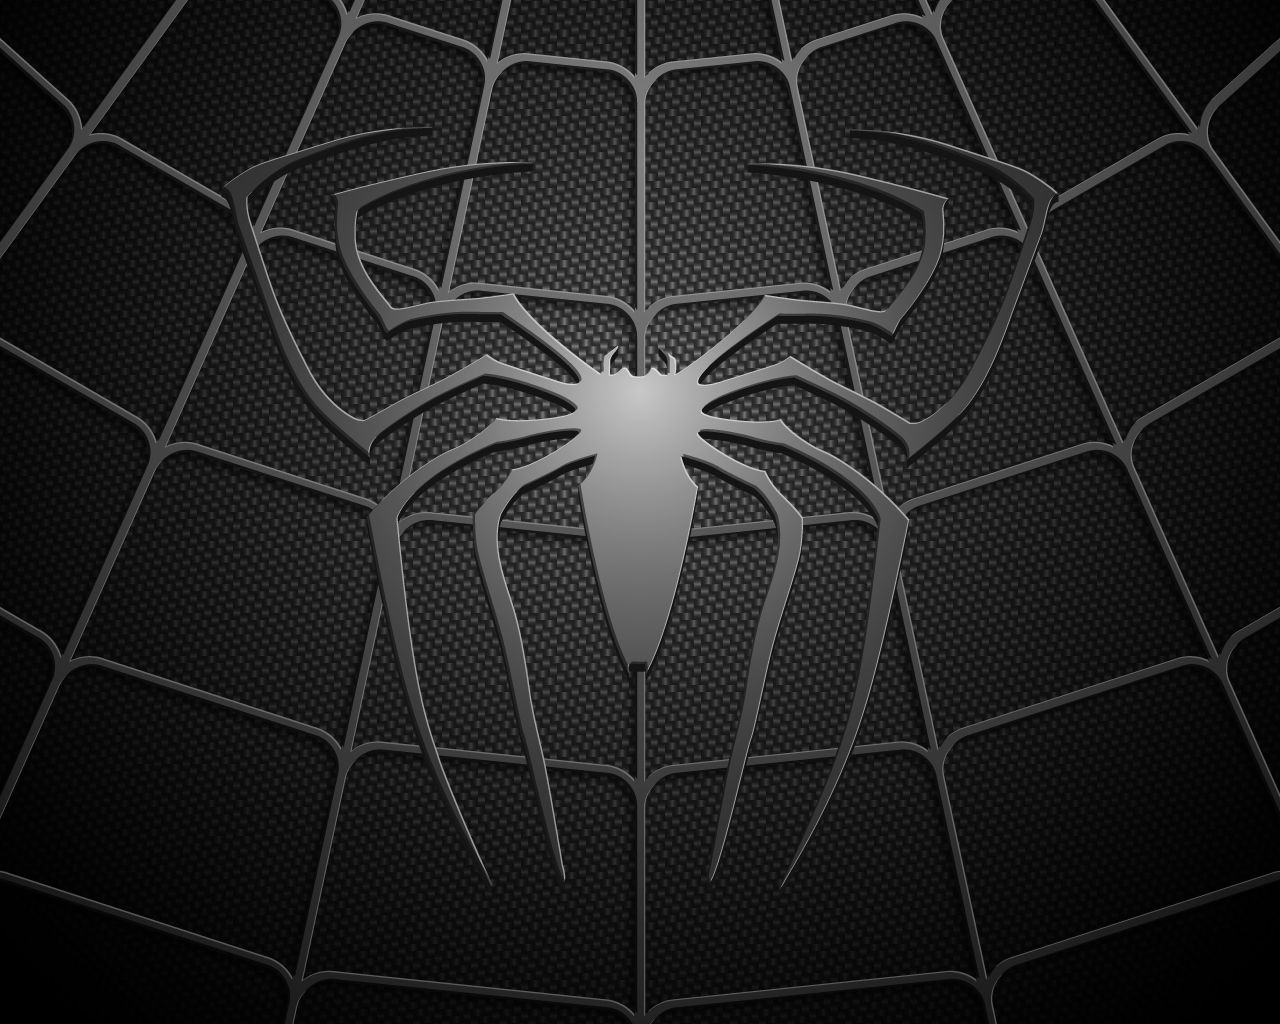 Image For Black Spiderman Logo Desktop Wallpaper Black Spiderman Arana De Spiderman Venom Wallpaper